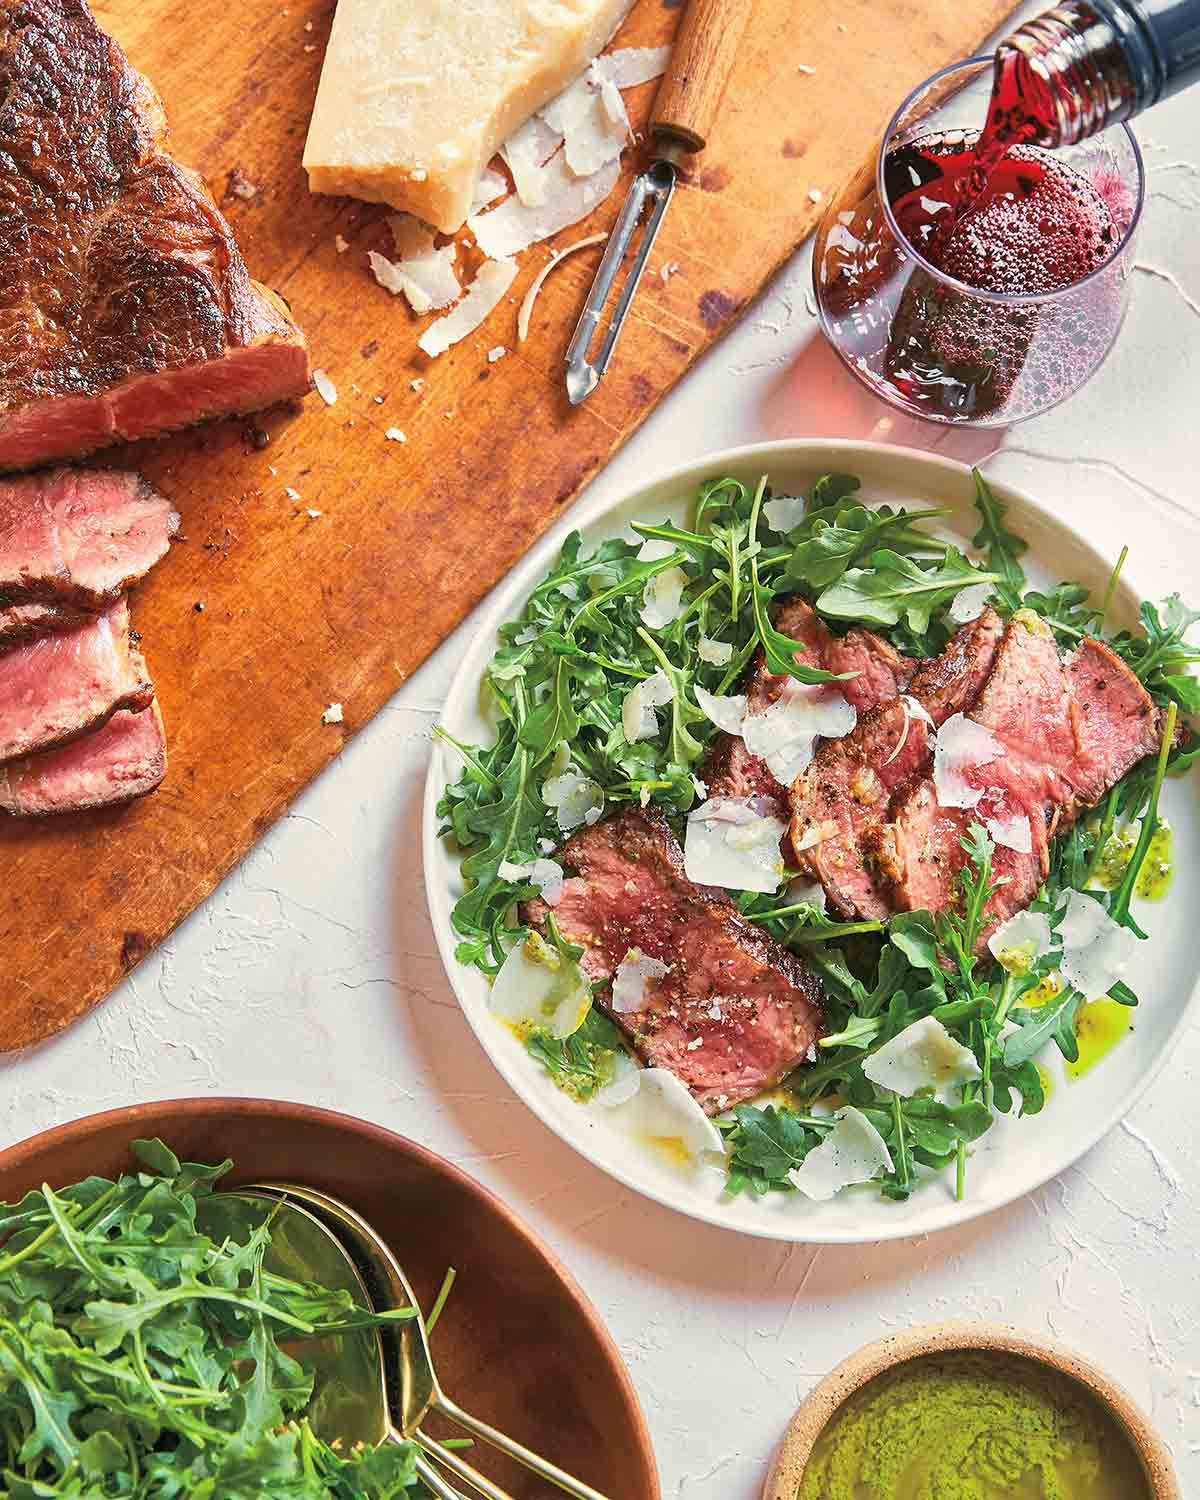 A steak and arugula salad with pesto vinaigrette in a white bowl, with a wooden board and sliced steak next to it.